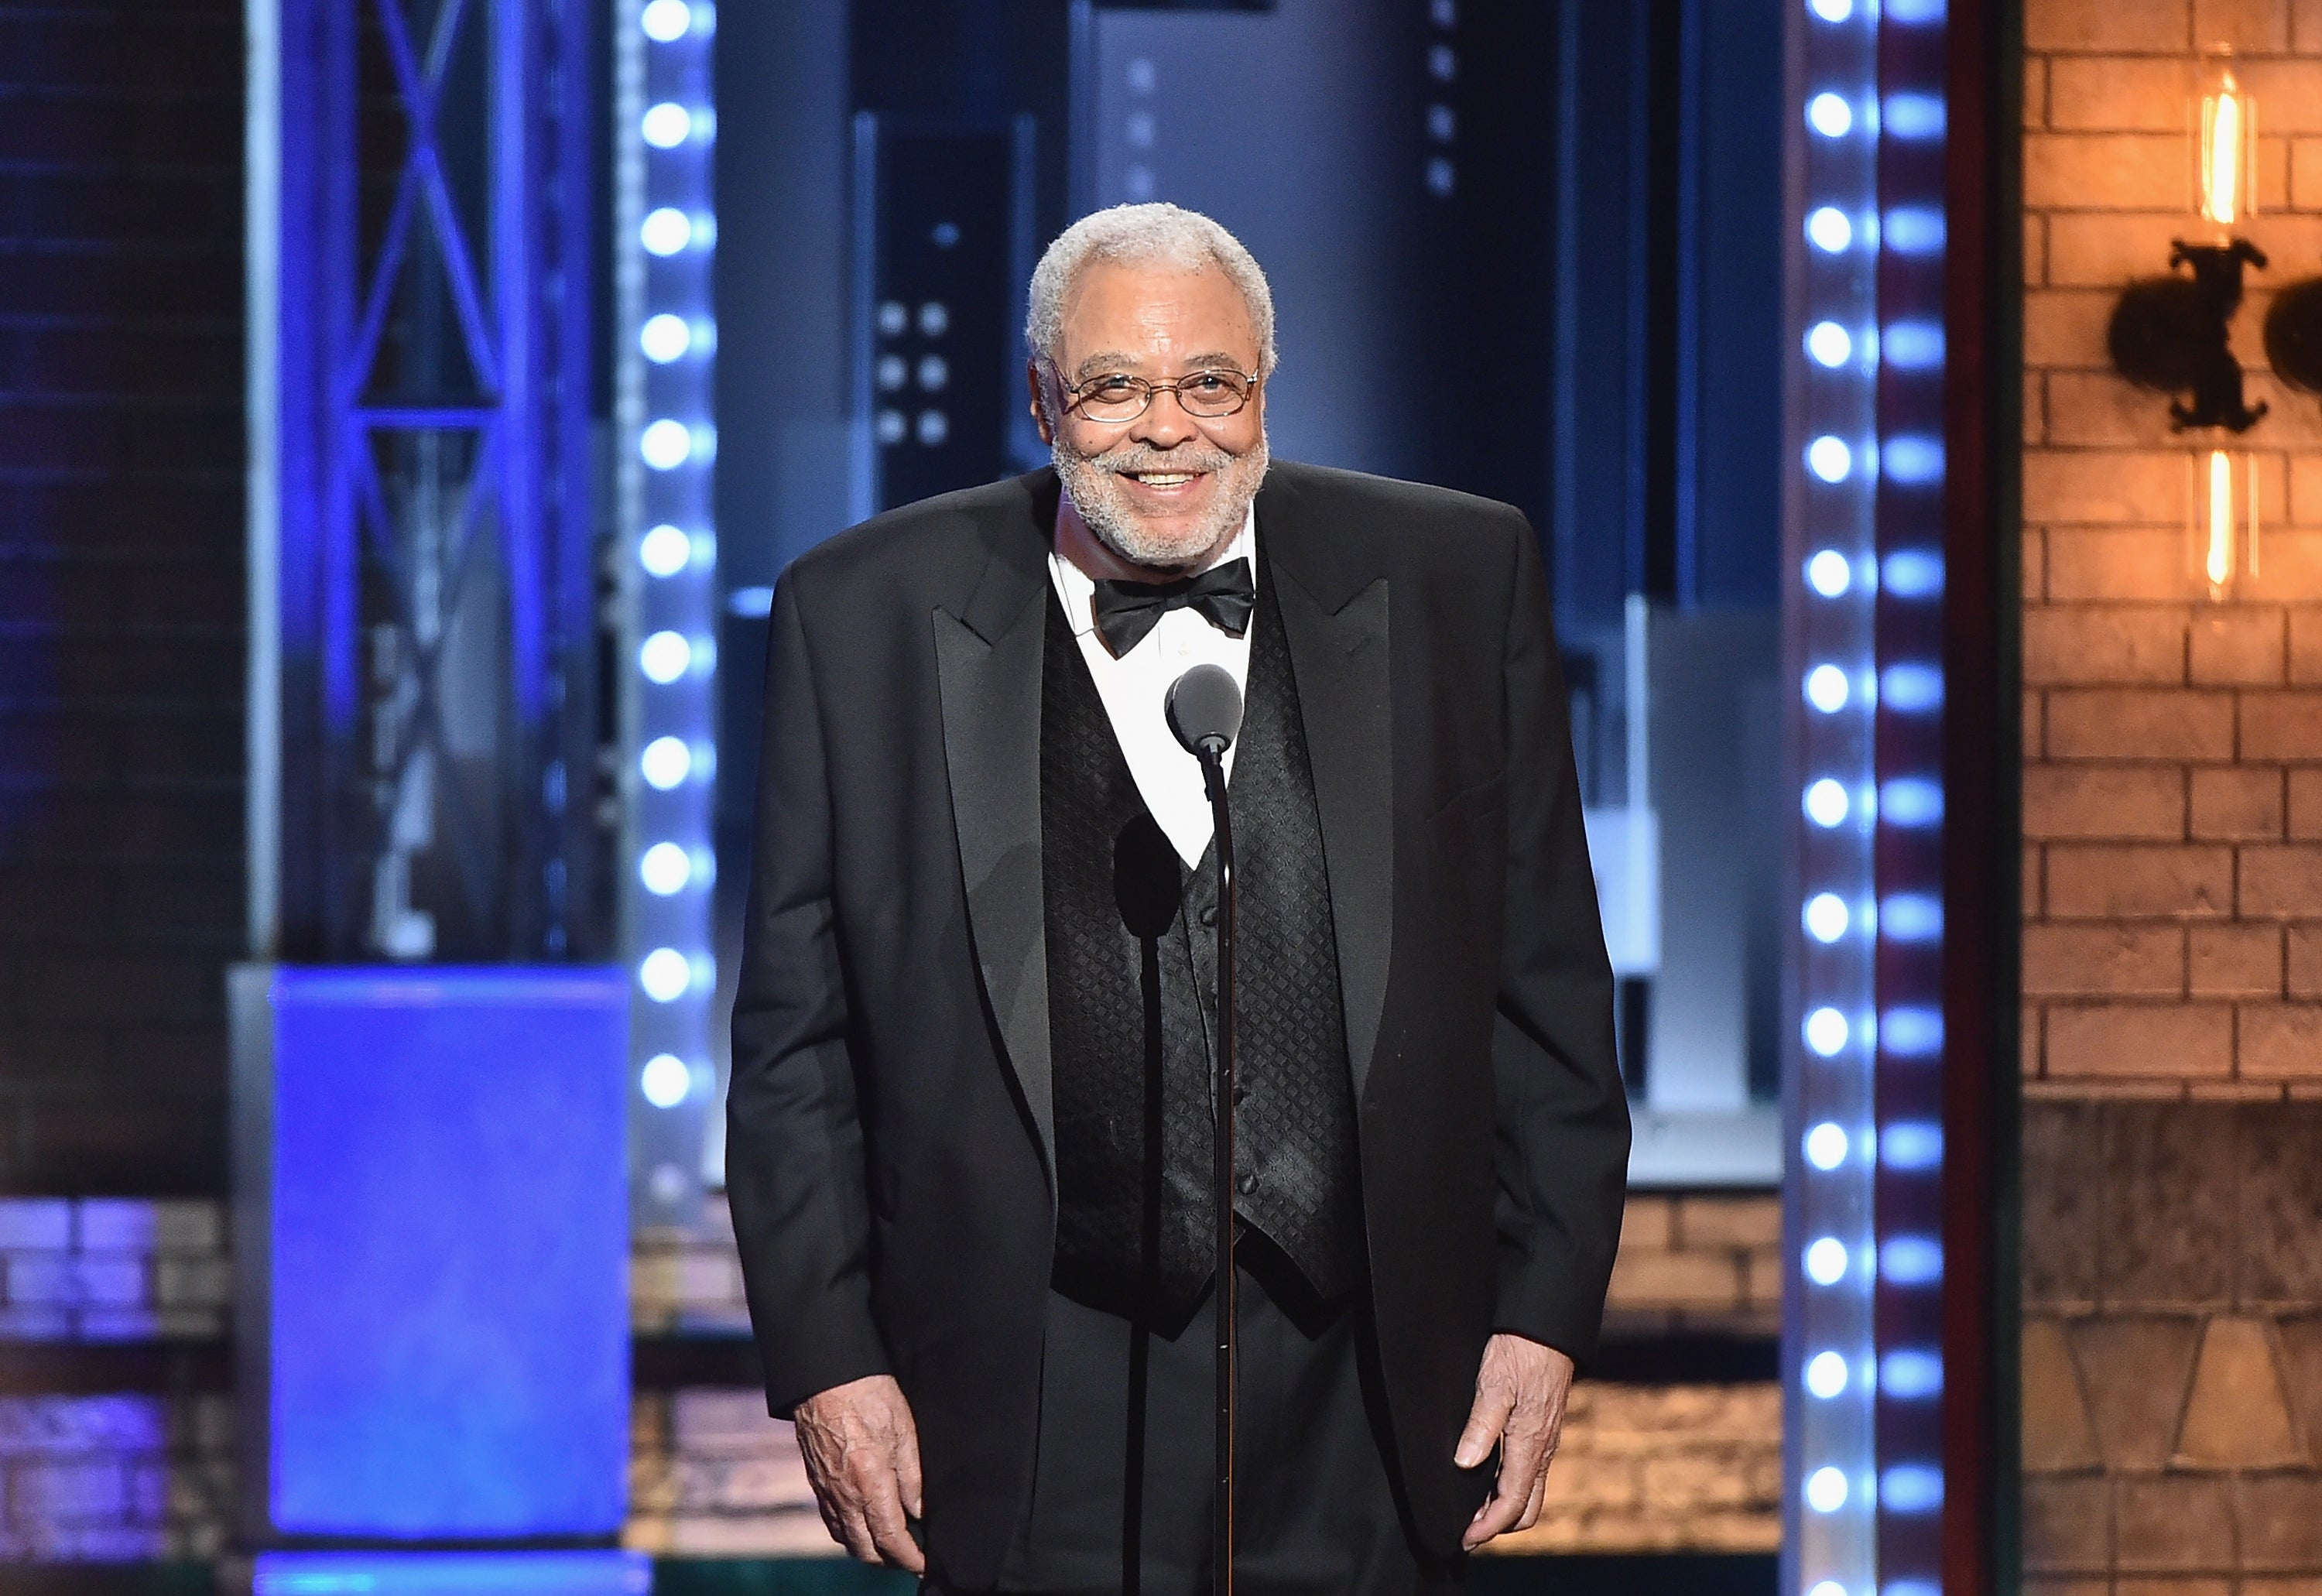 Tony Awards Honor James Earl Jones With Lifetime Achievement Award